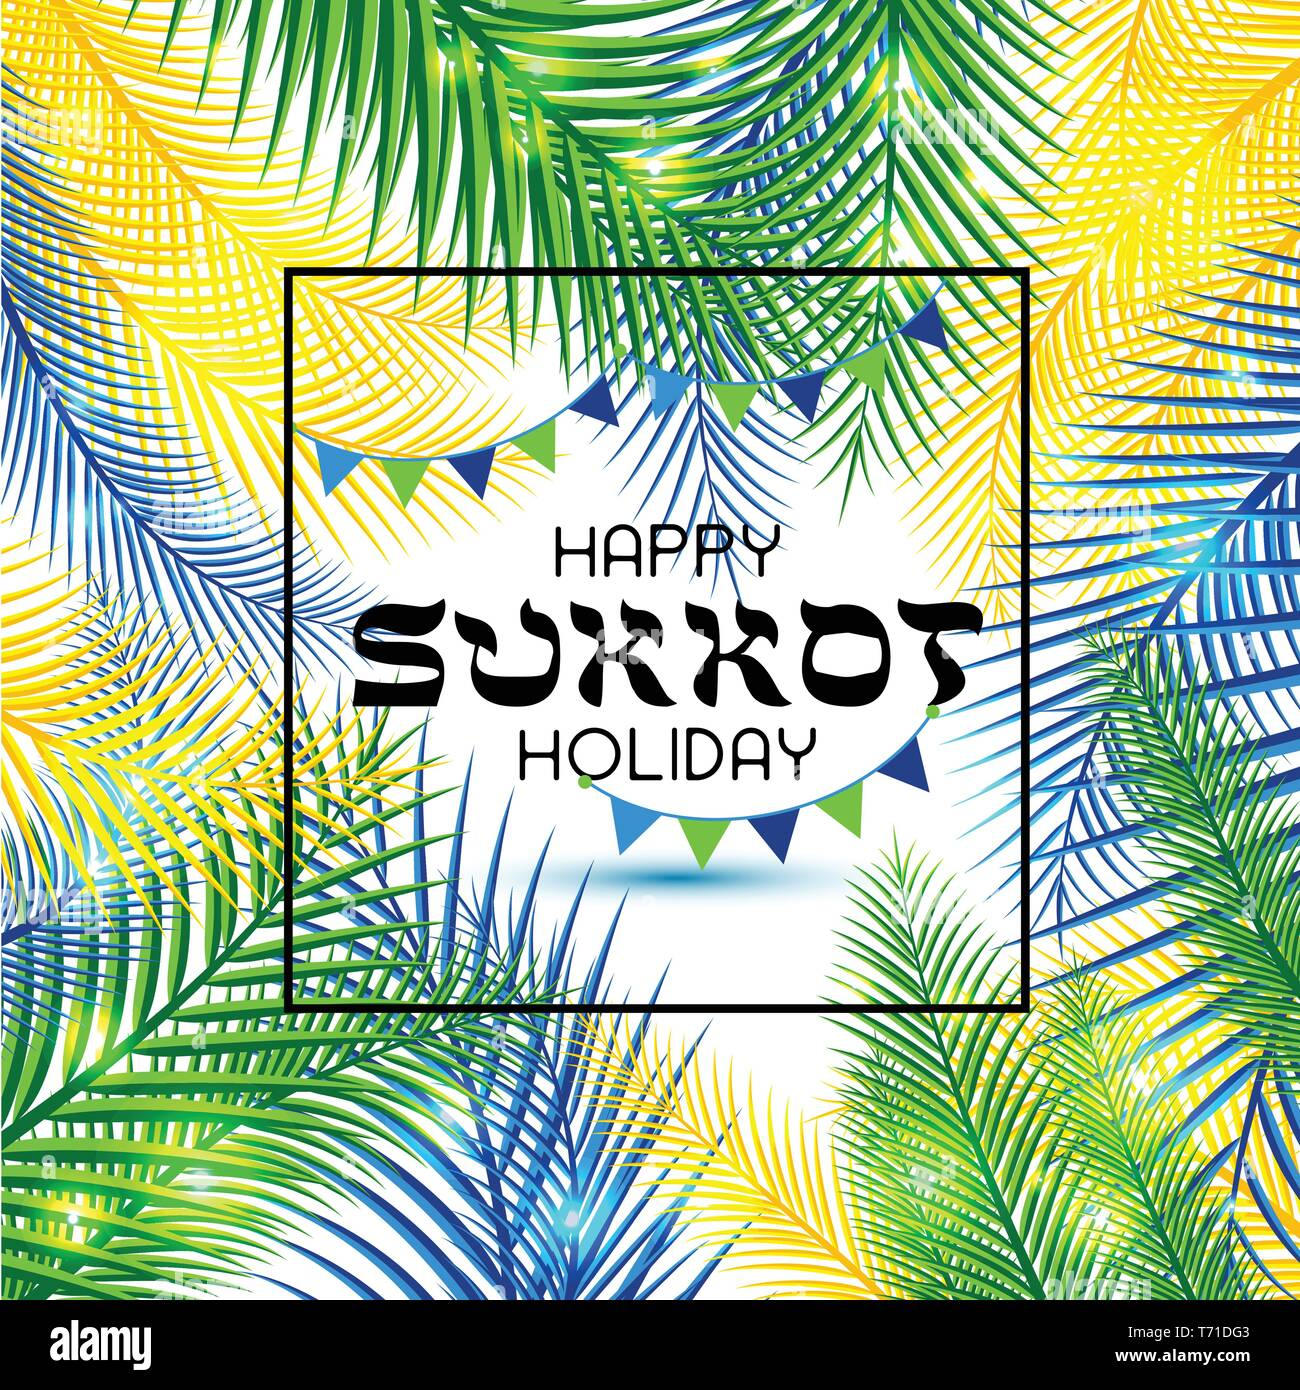 Vector illustration for the Jewish Holiday Sukkot. Hebrew greeting for happy sukkot. - Stock Vector